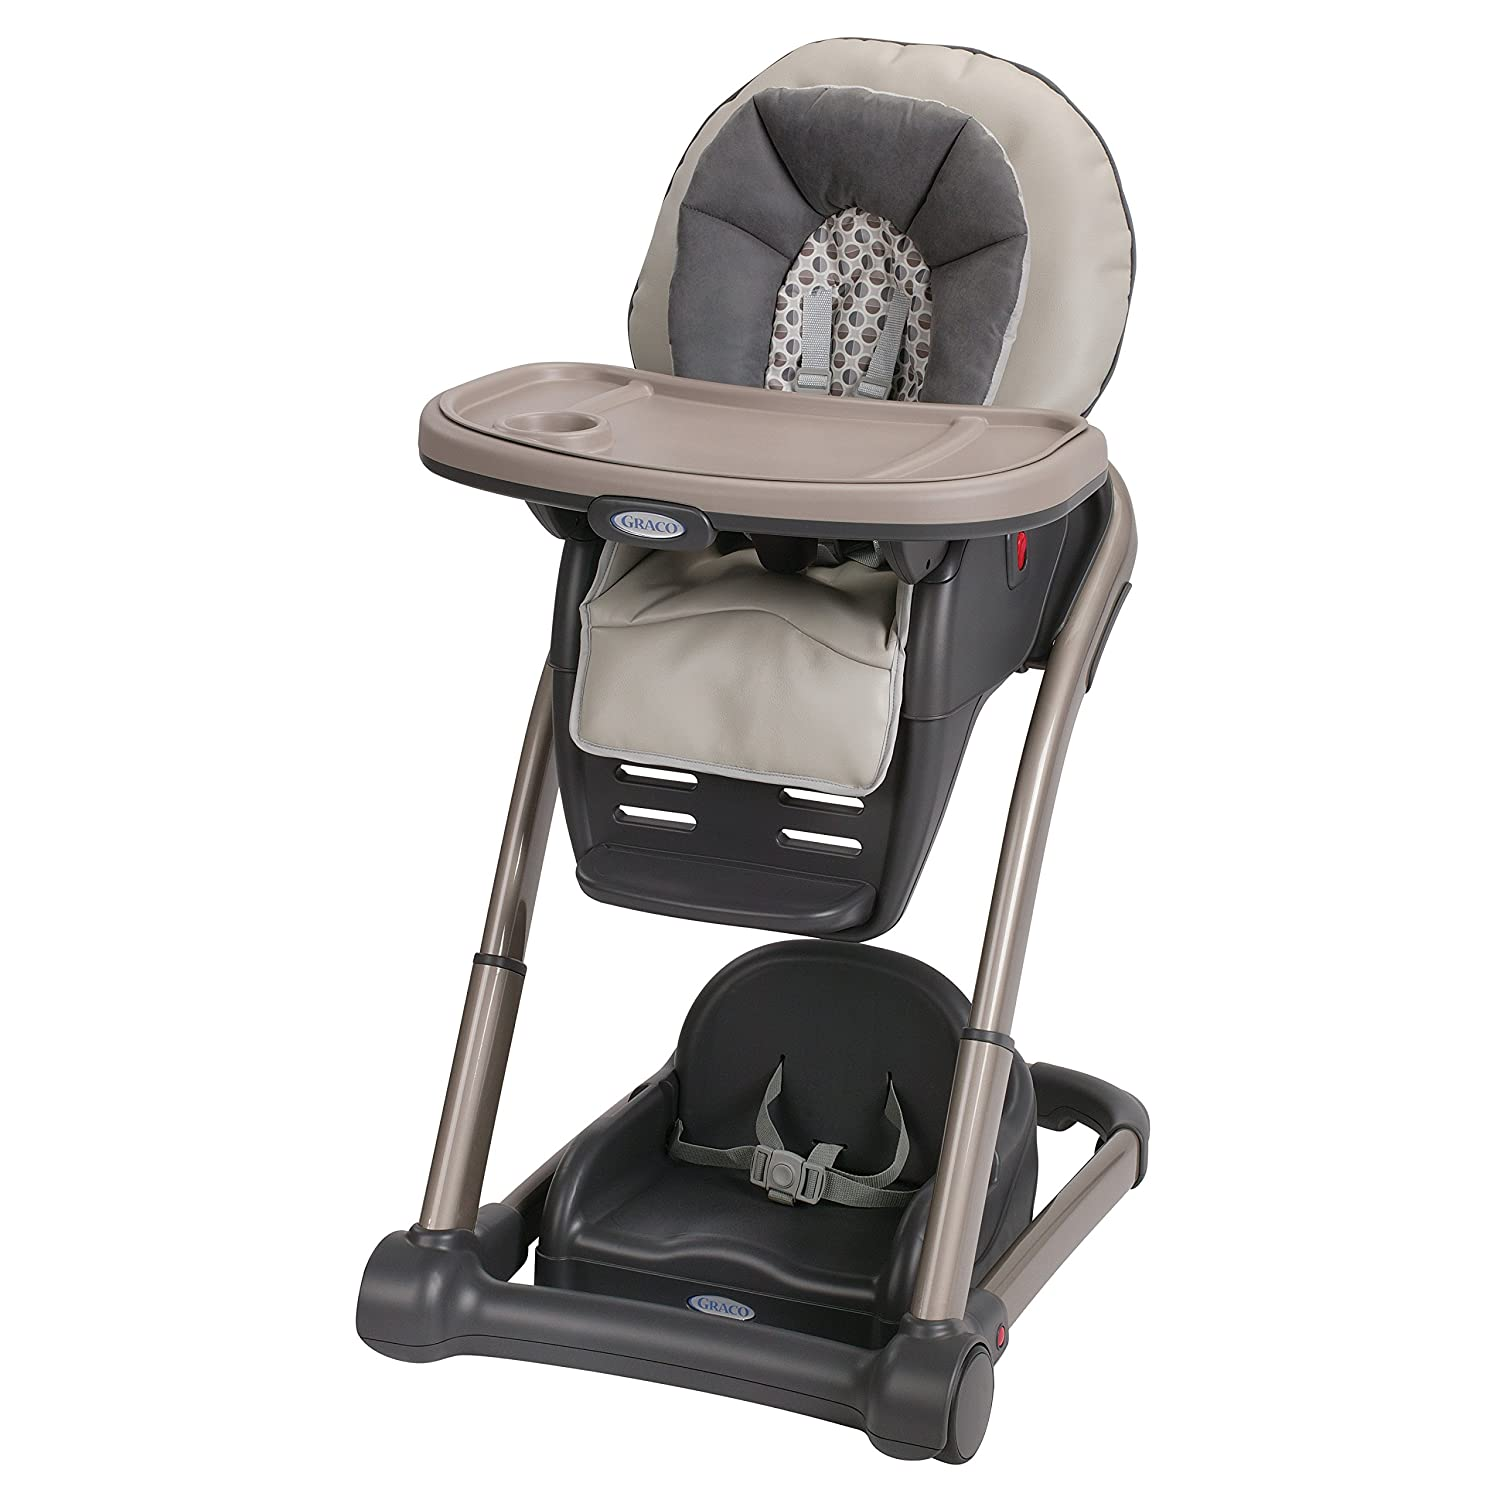 f0fbd24c45128 Amazon.com   Graco Blossom 6-in-1 High Chair